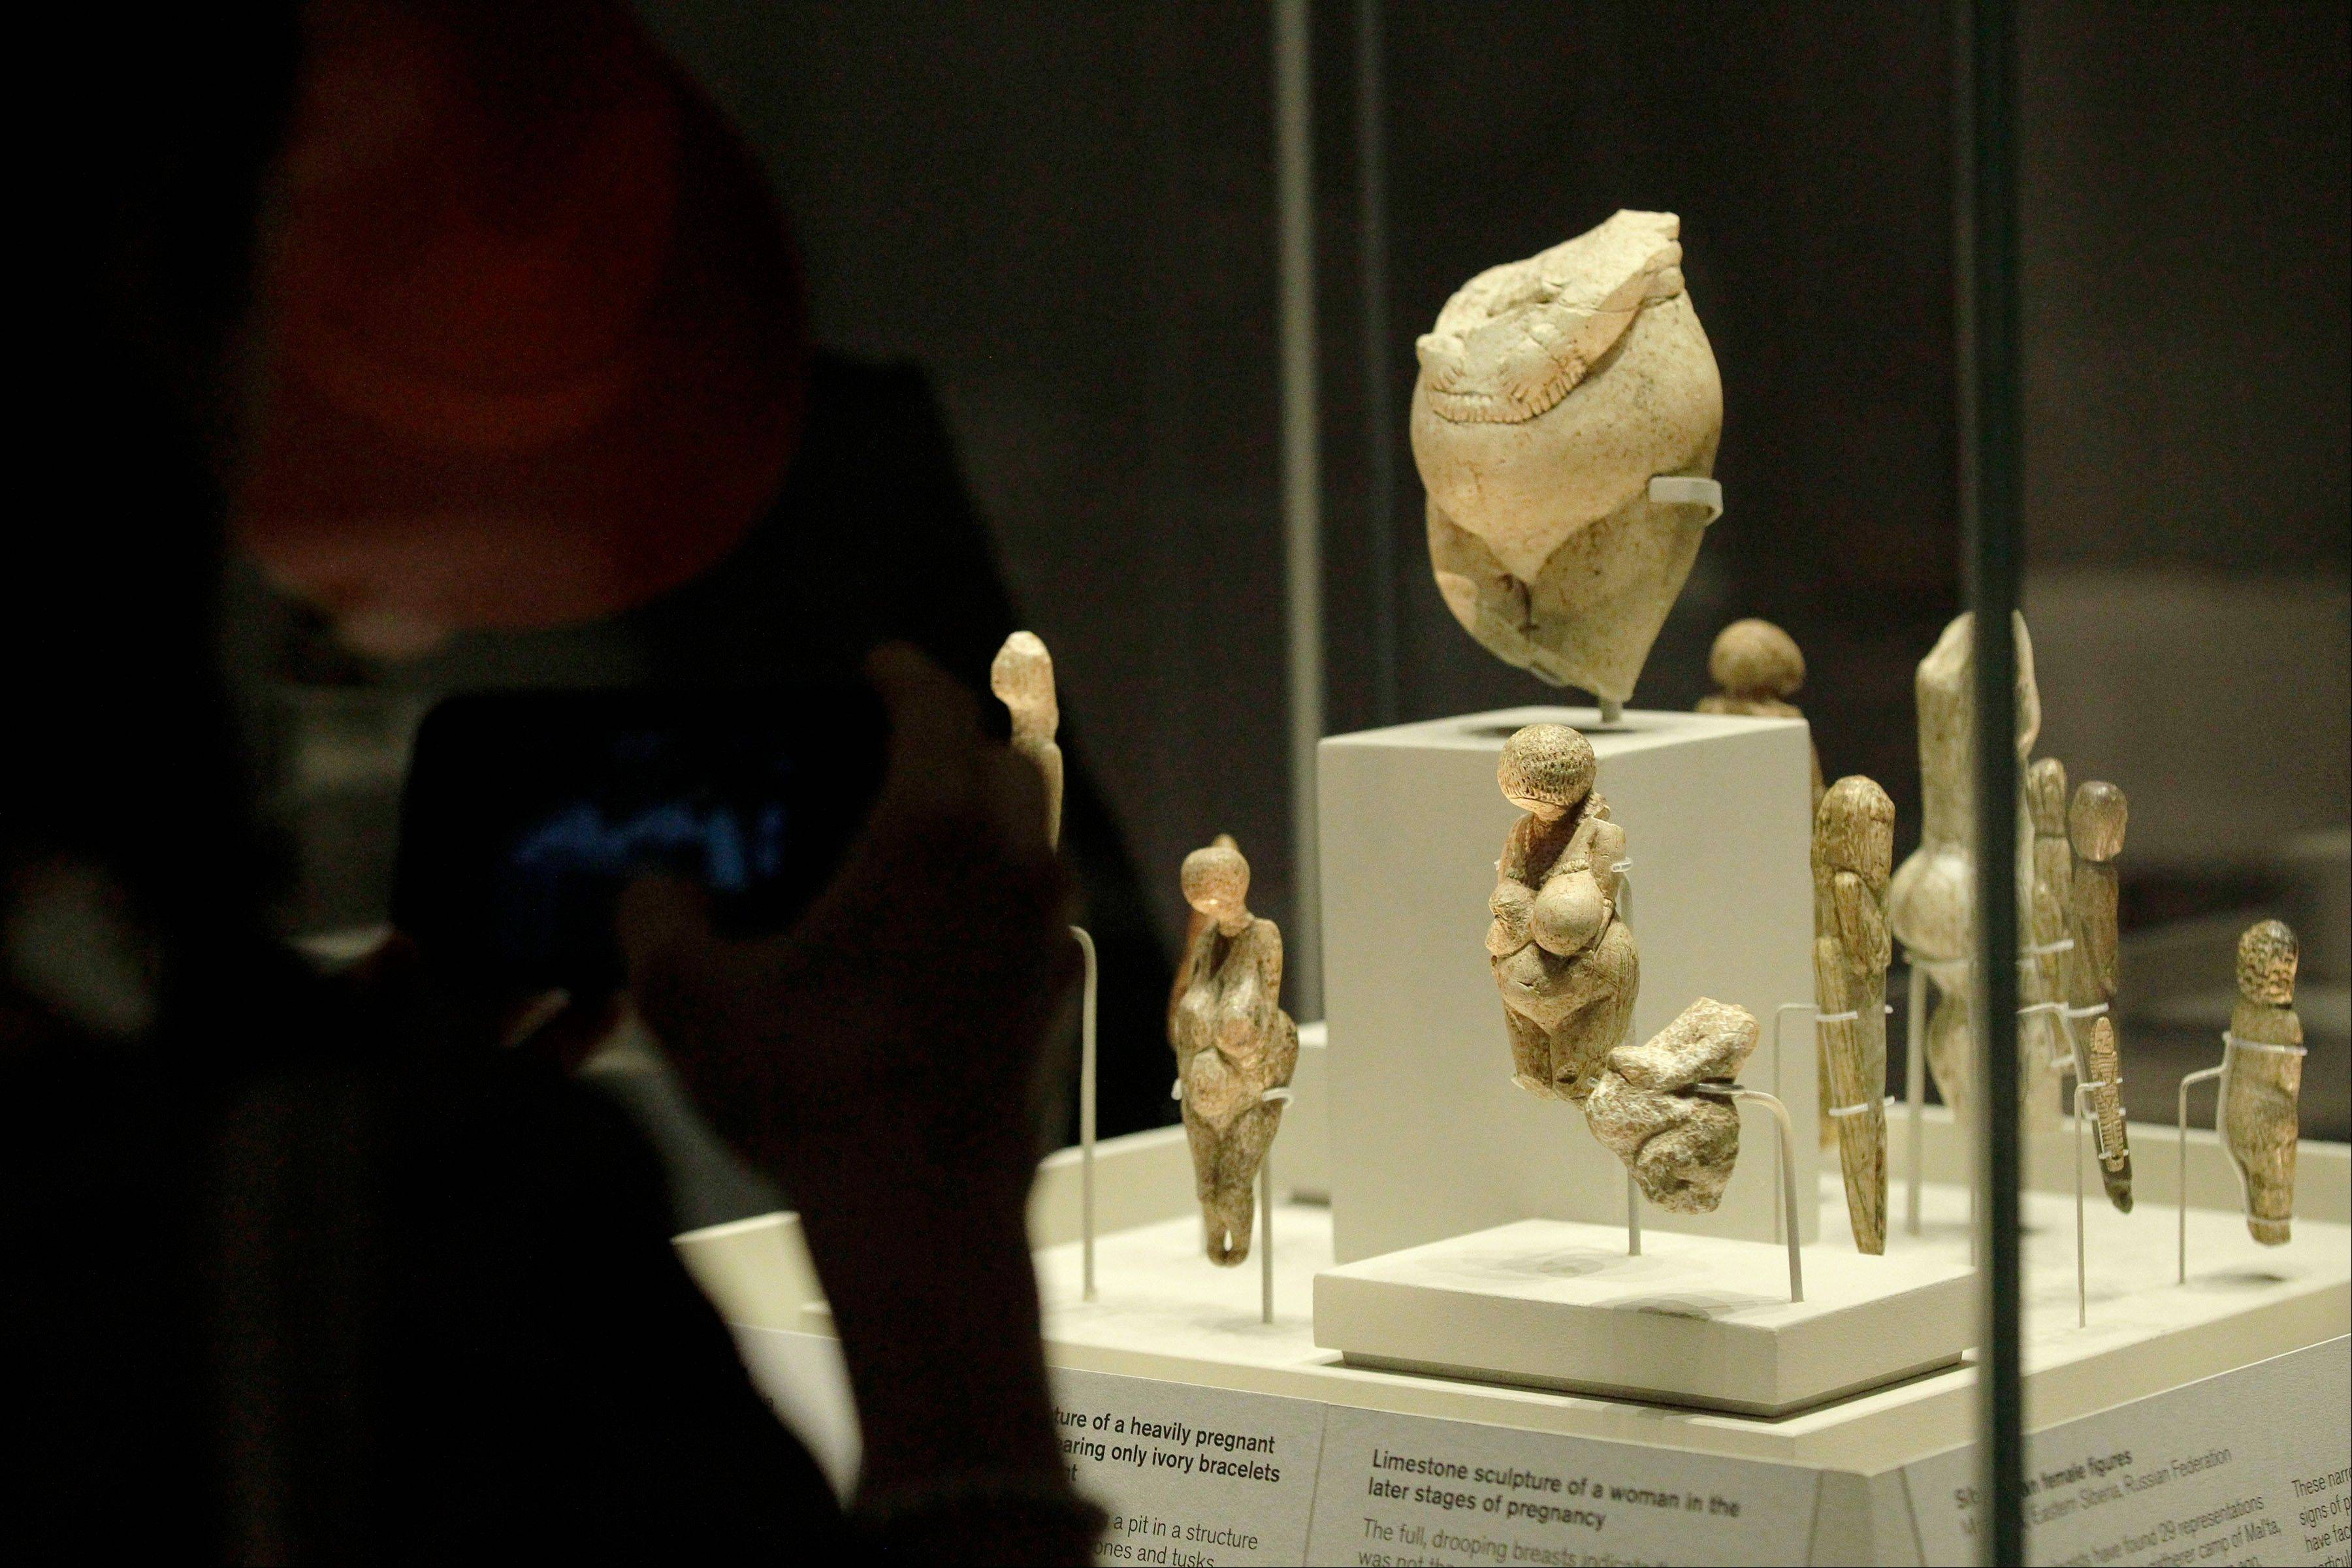 Visitors look at sculptures of pregnant women on display in an exhibition 'Ice Age Art : arrival of the modern mind' at the British Museum in London.